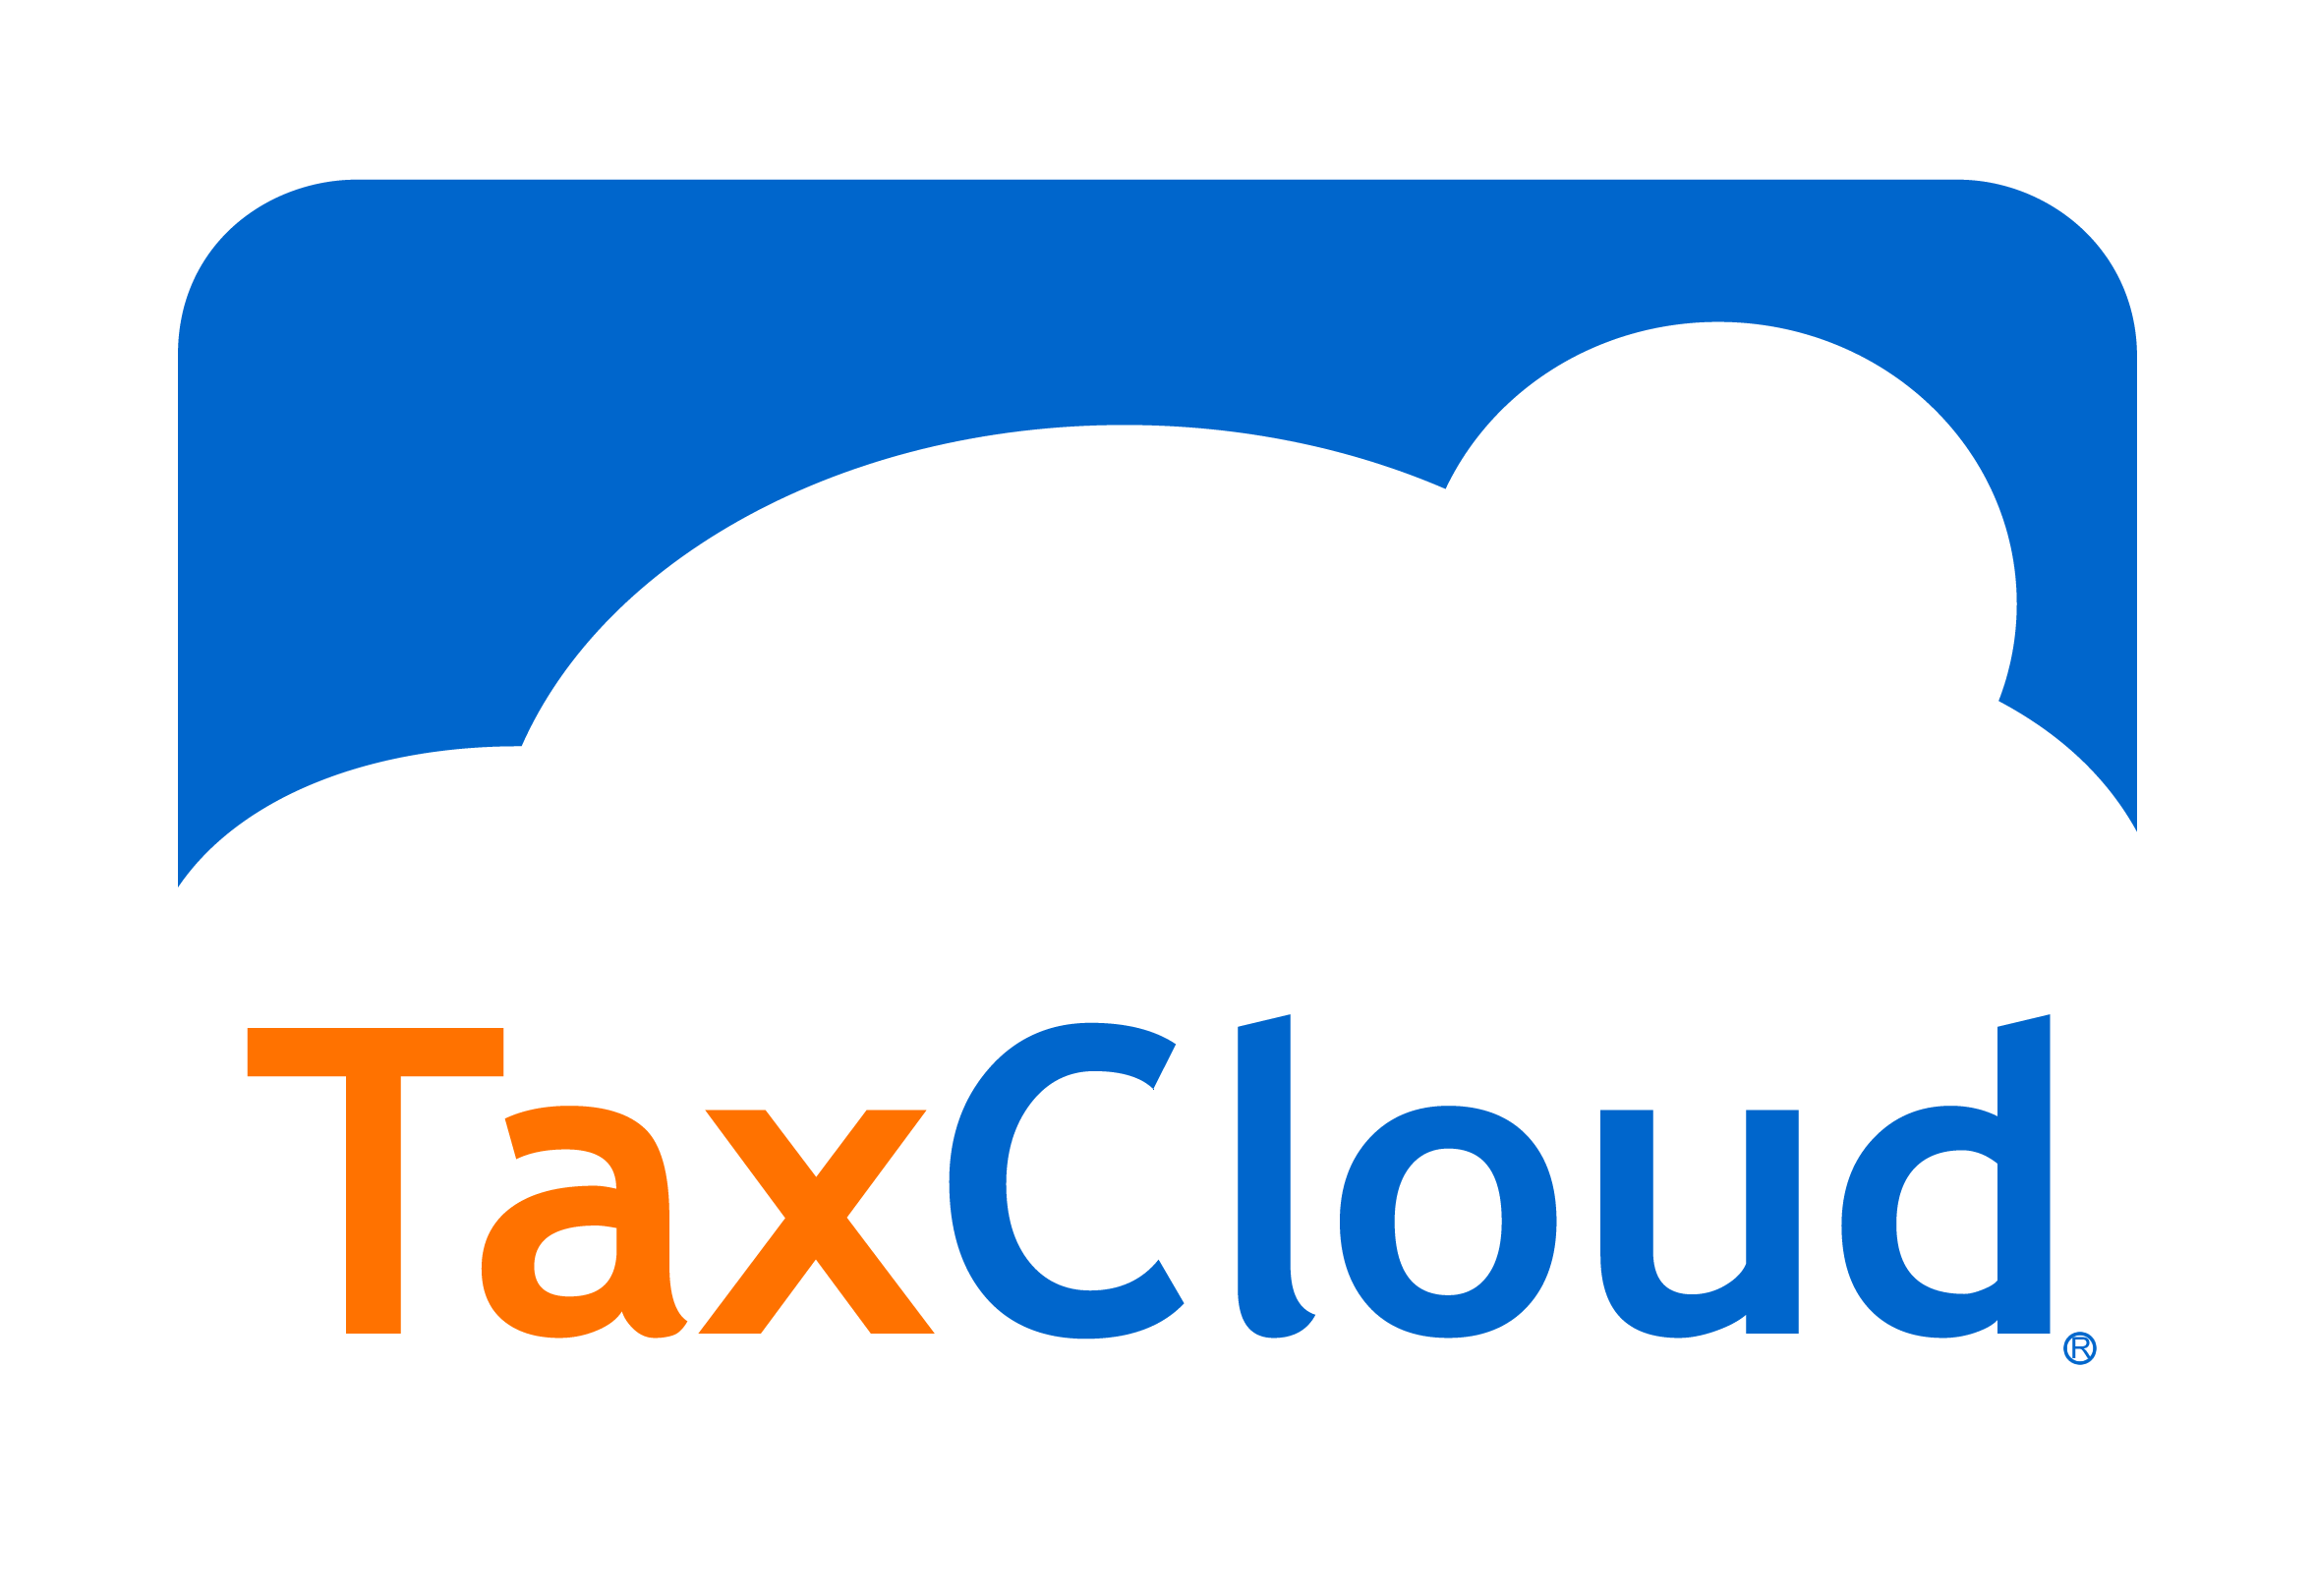 Taxcloud tax management solution. Clipart clouds logo